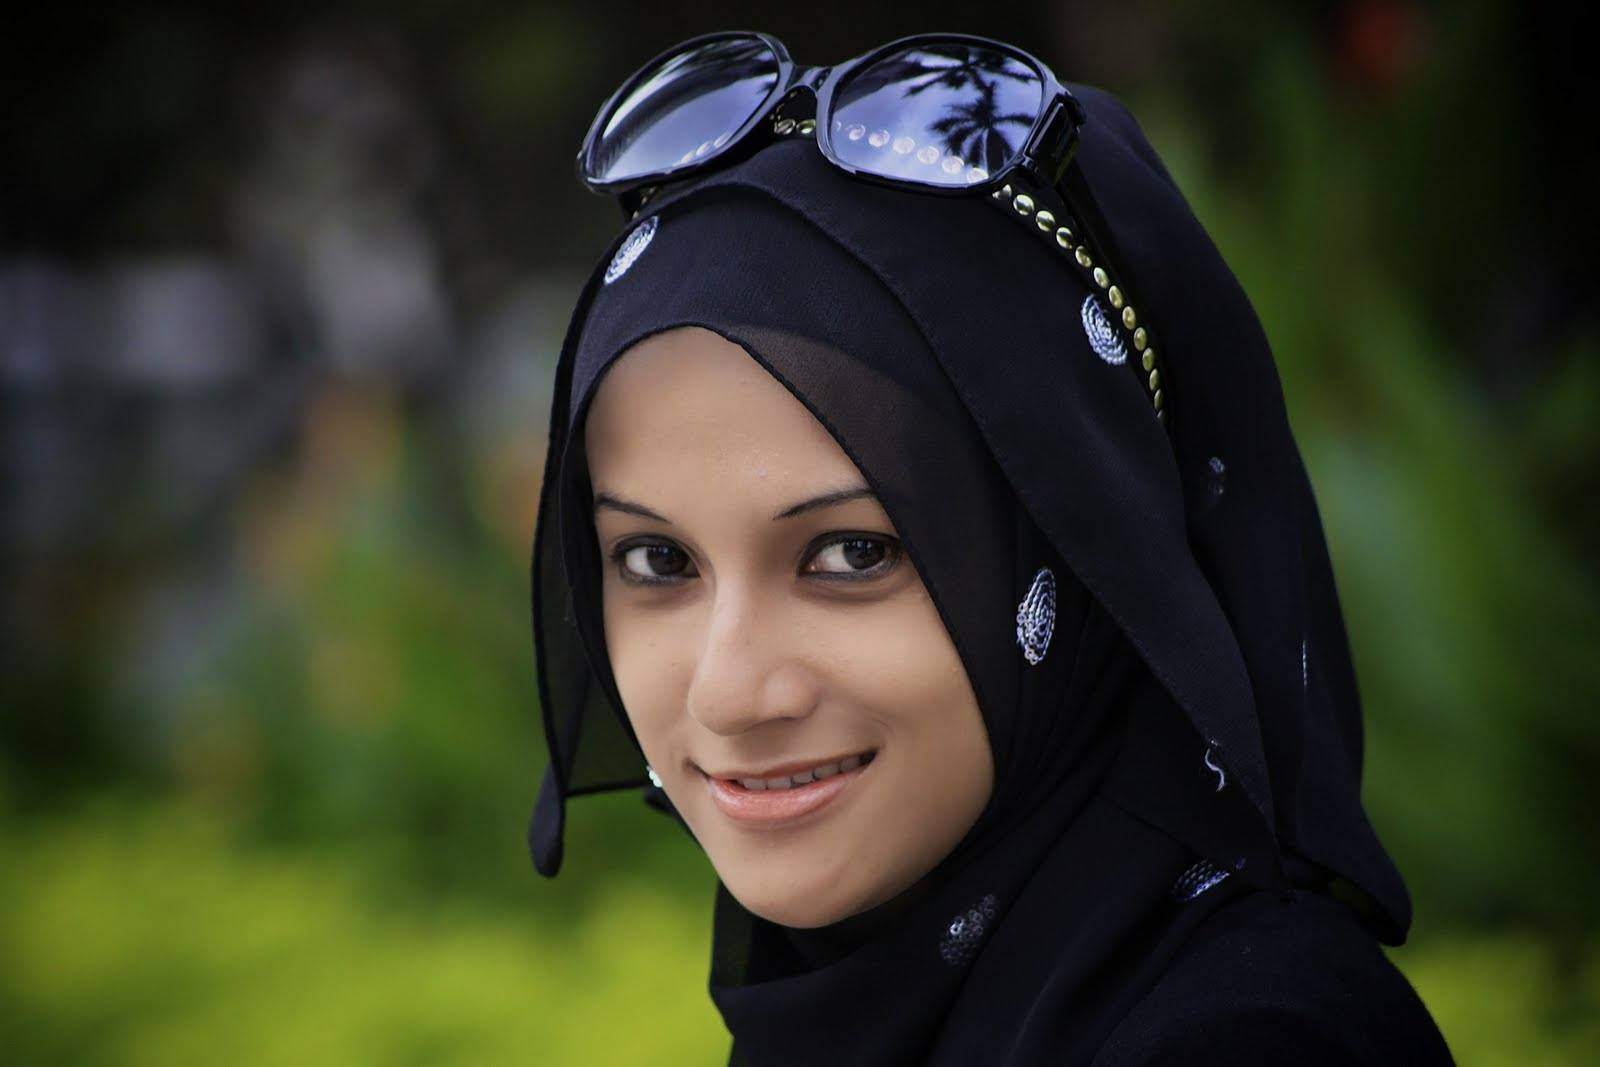 oklee muslim girl personals Muslimacom muslim singles dating and personals - men looking for a woman -  women looking for a man join the leader in mutual relations services and find a .